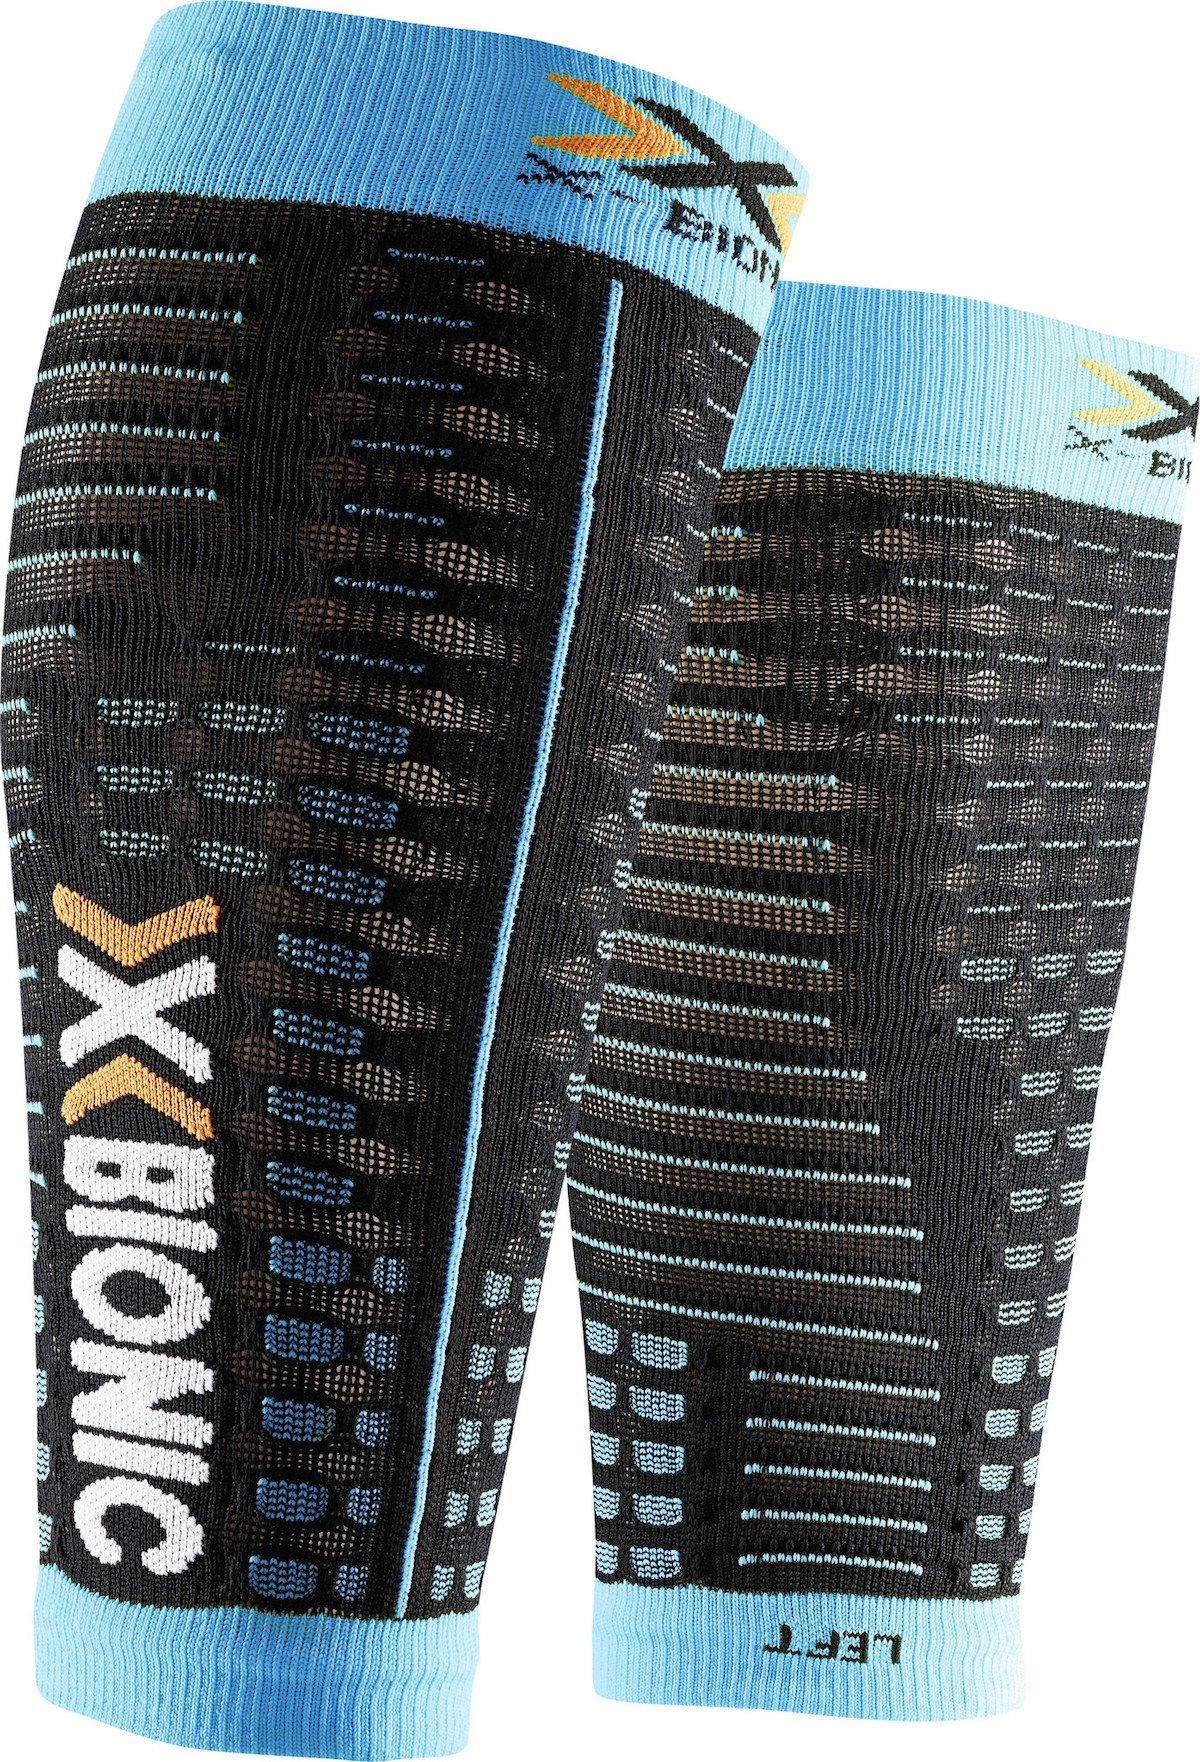 X-Bionic - Spyker Competition - Compression socks - Women's